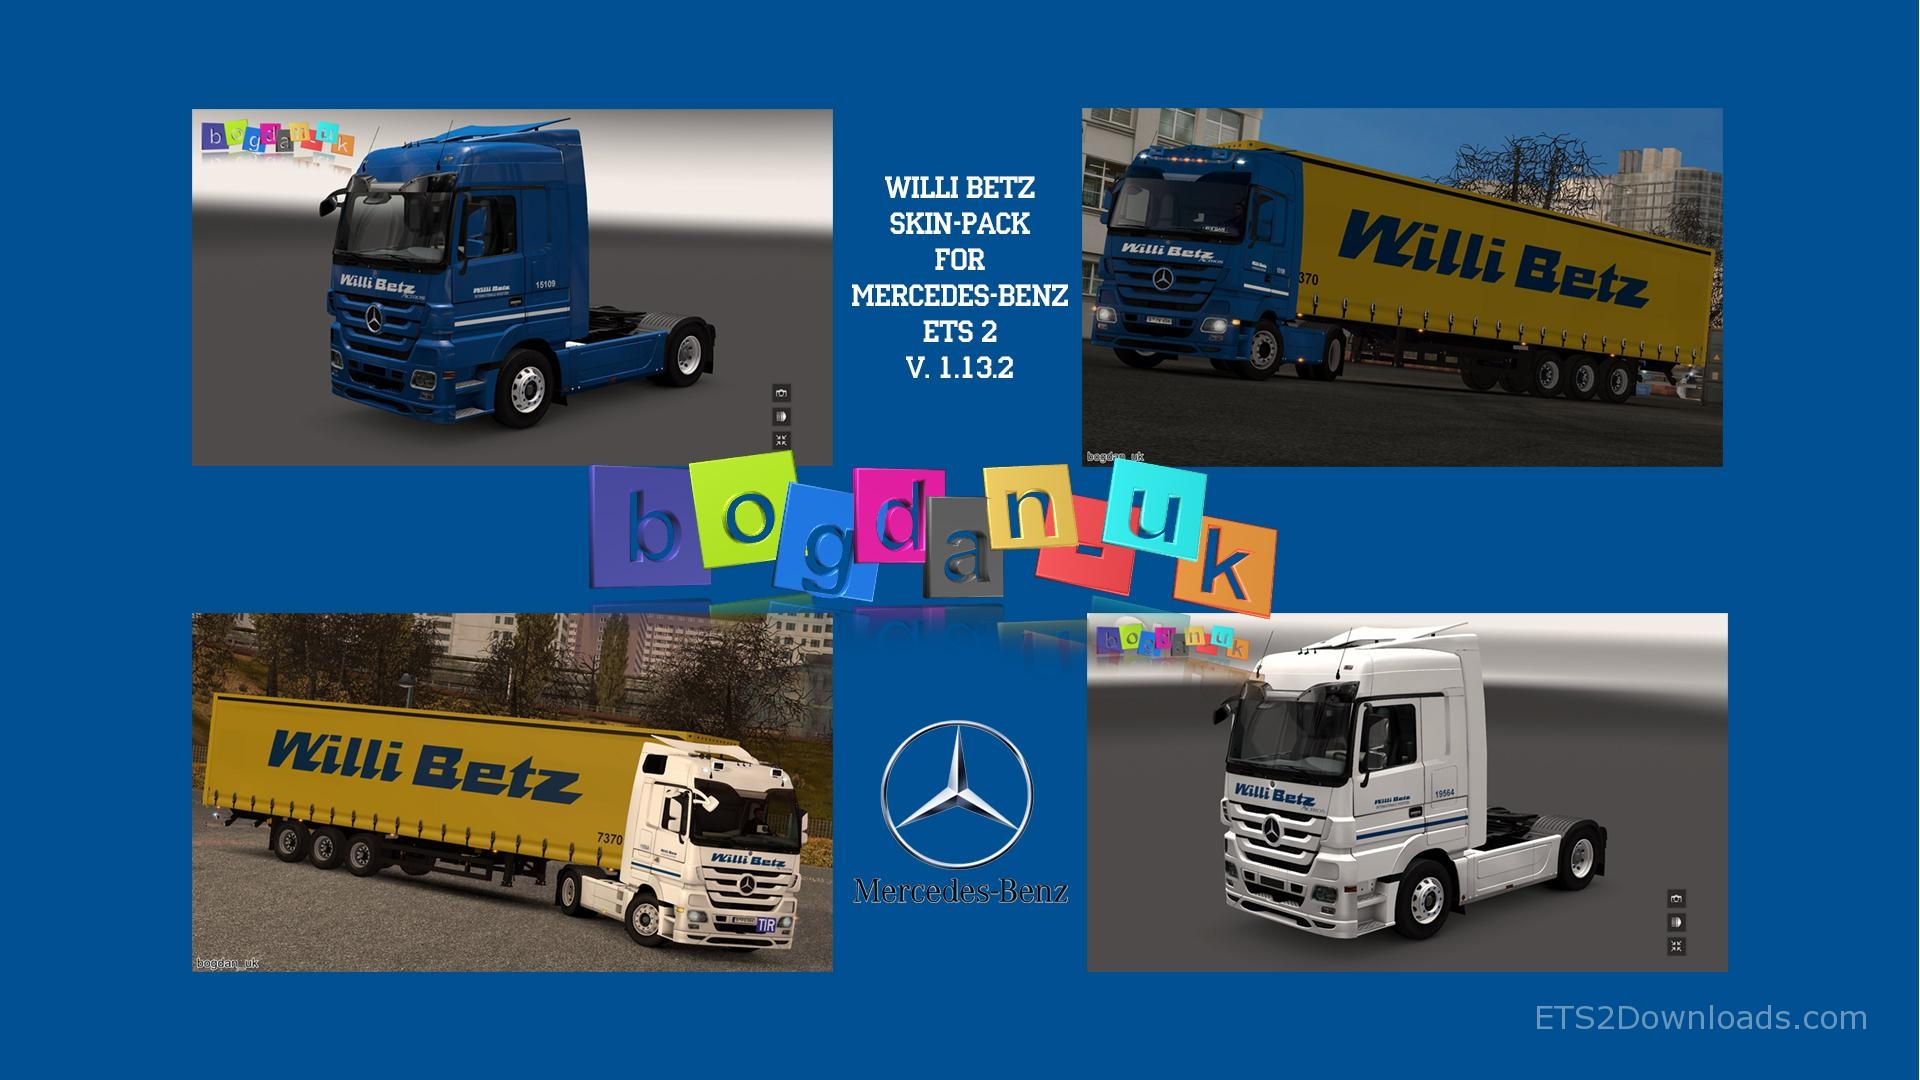 willi-betz-skin-pack-for-mercedes-benz-1